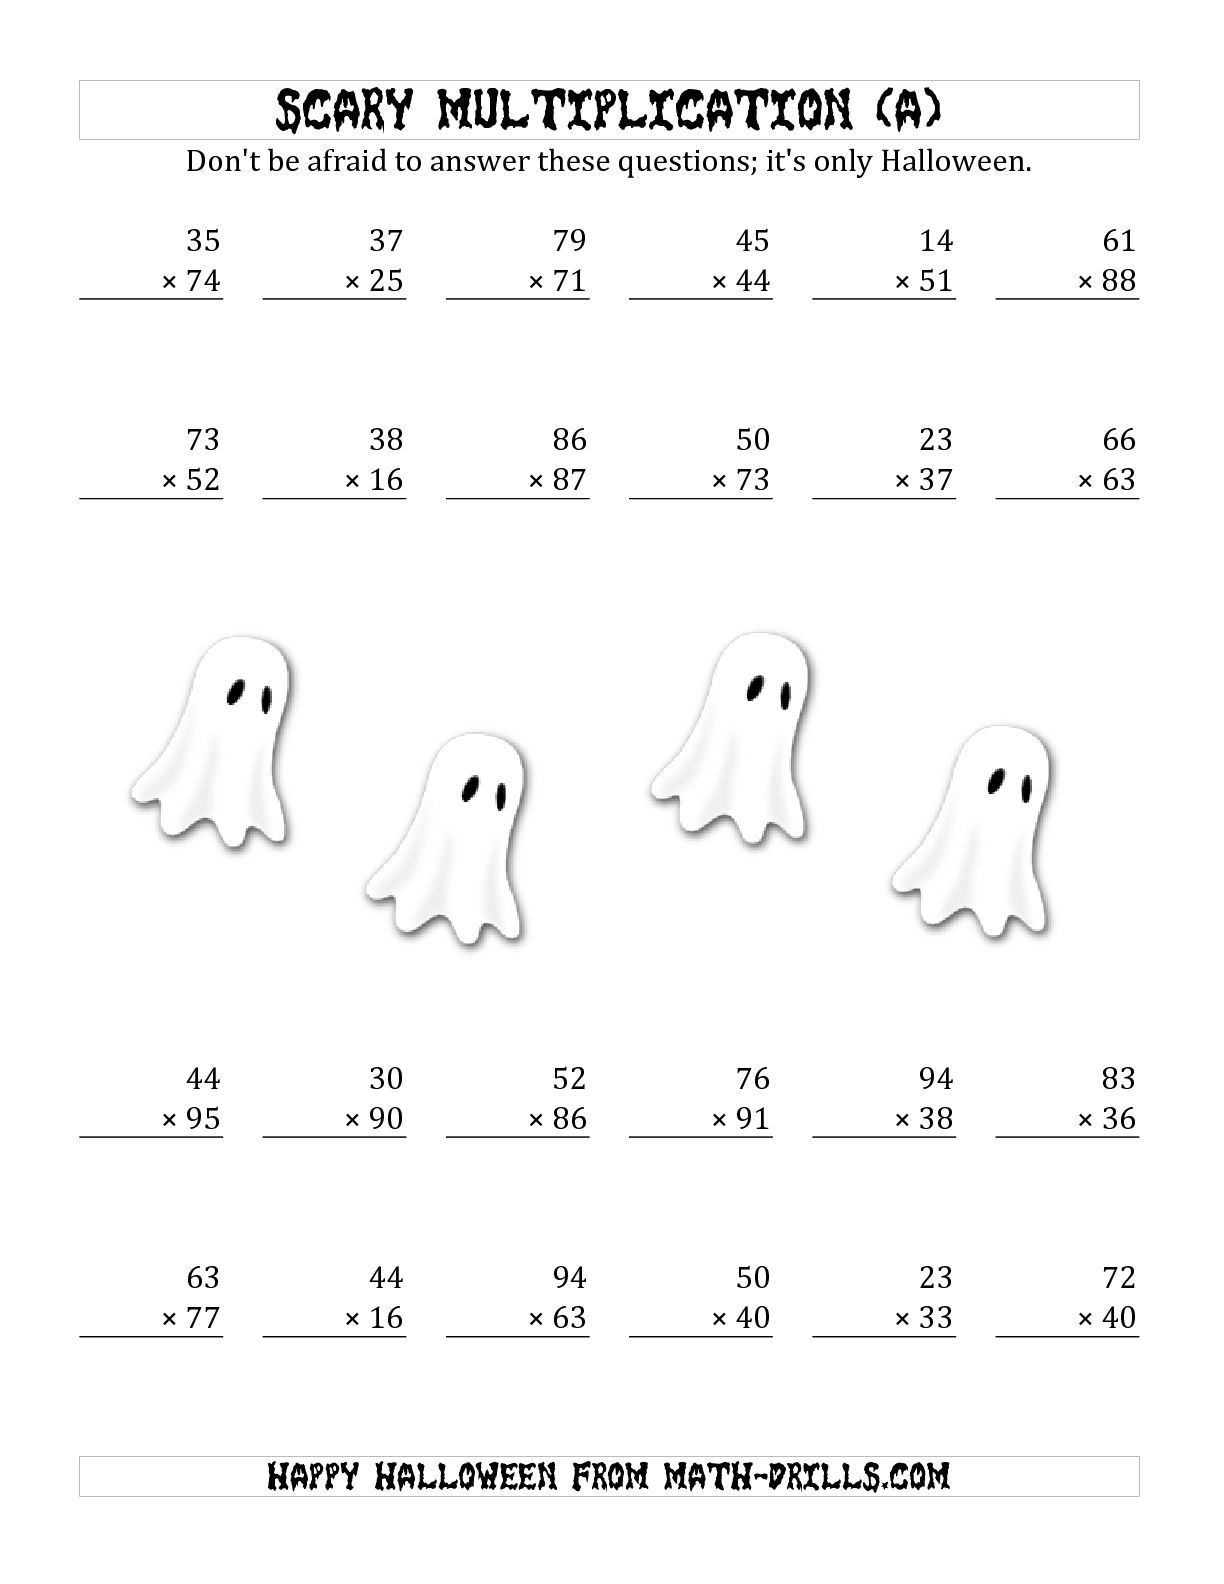 The Scary Multiplication (2-Digit by 2-Digit) (A) math worksheet from t…    Halloween math worksheets [ 1584 x 1224 Pixel ]